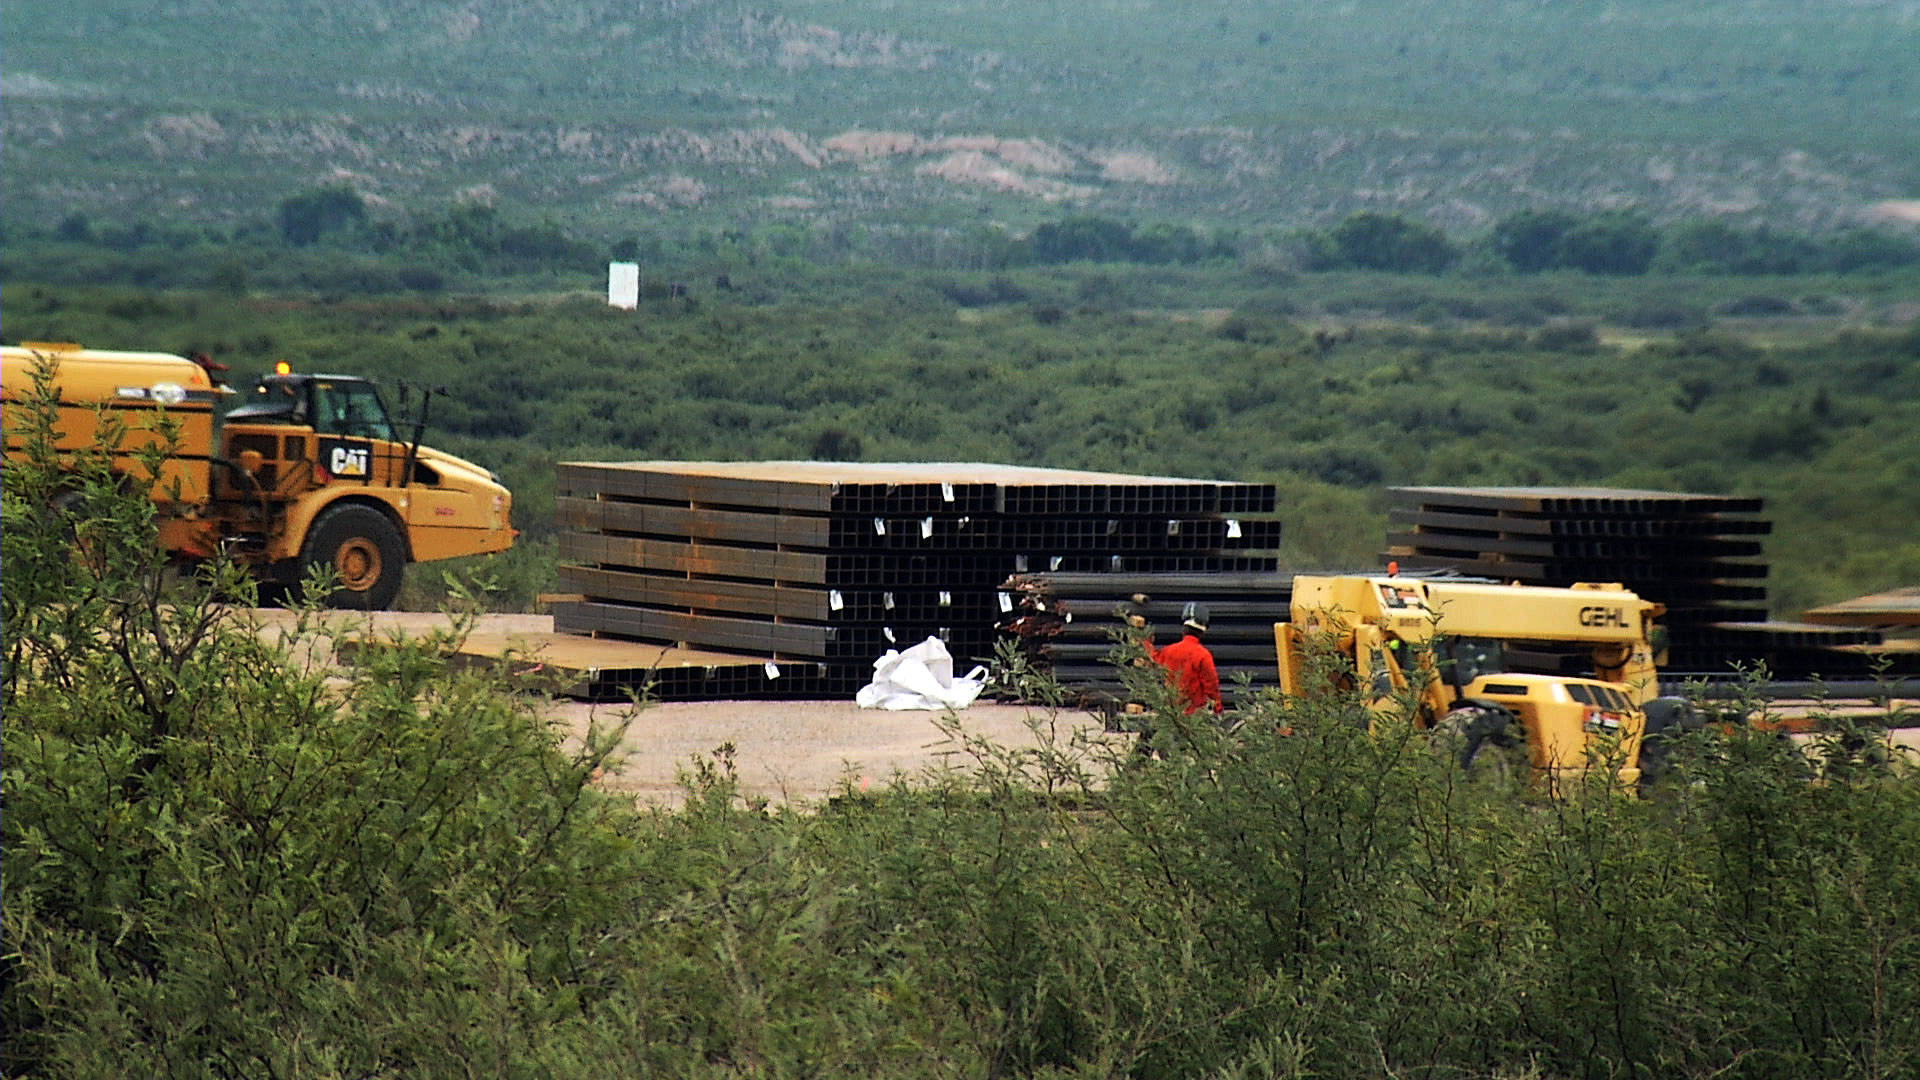 A cement batch site on a rancher's property east of Douglas leased by Southwest Valley Constructors for border wall construction.